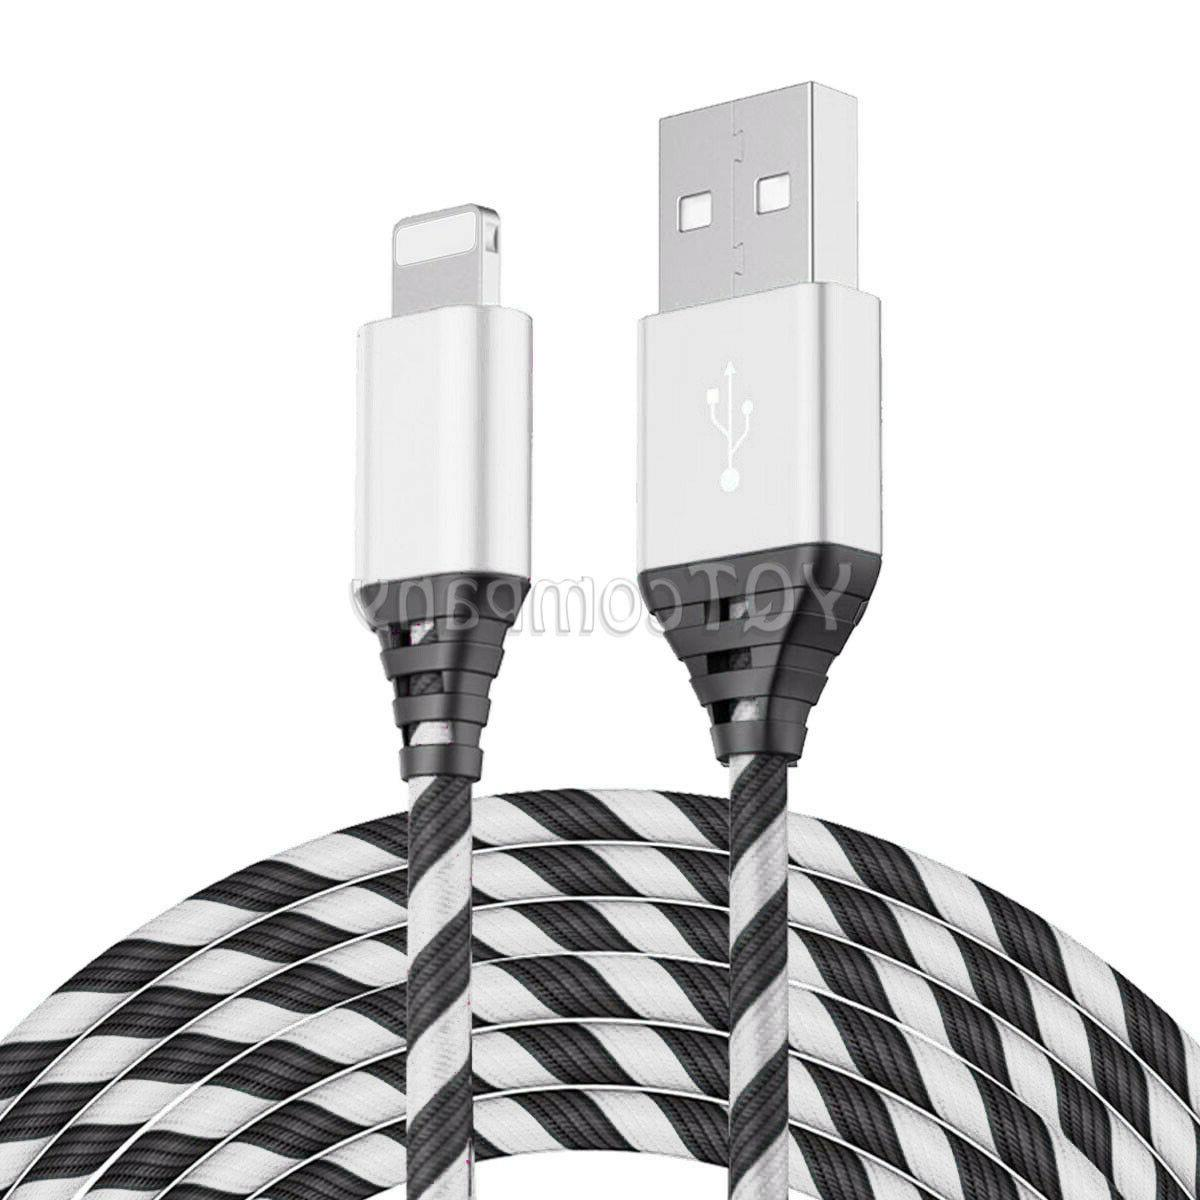 Lightning Cable 3 10 for iPhone 11 Pro Max Max XR 8